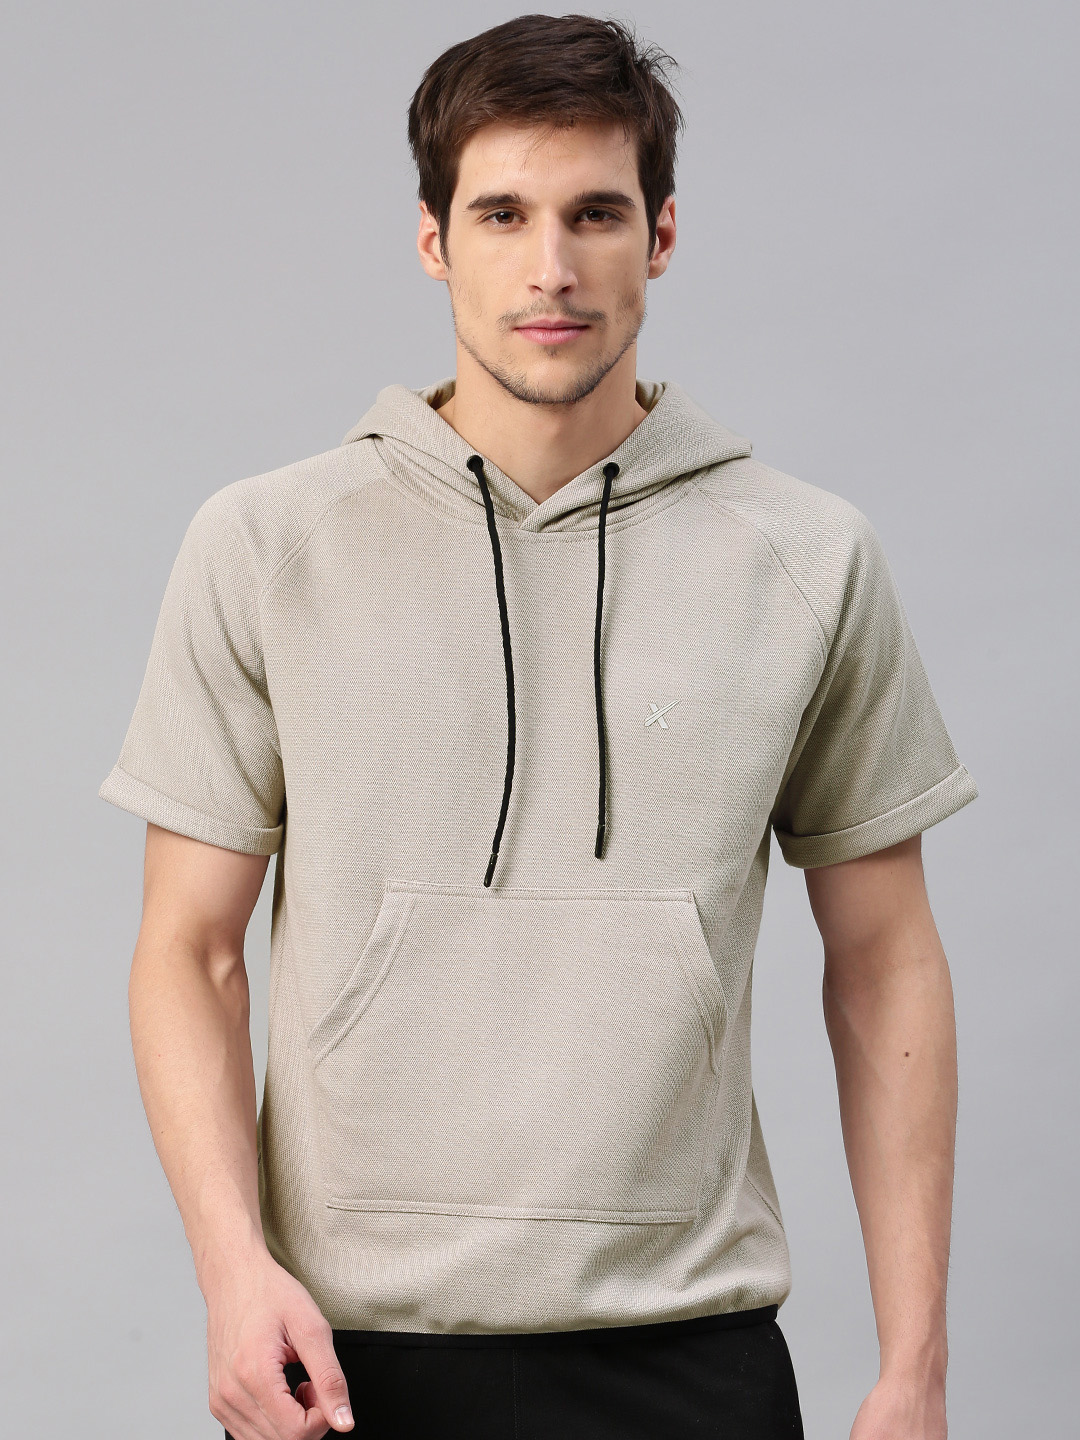 Buy HRX by Hrithik Roshan Grey Self Design Hooded Men's Sweatshirt At Best Price